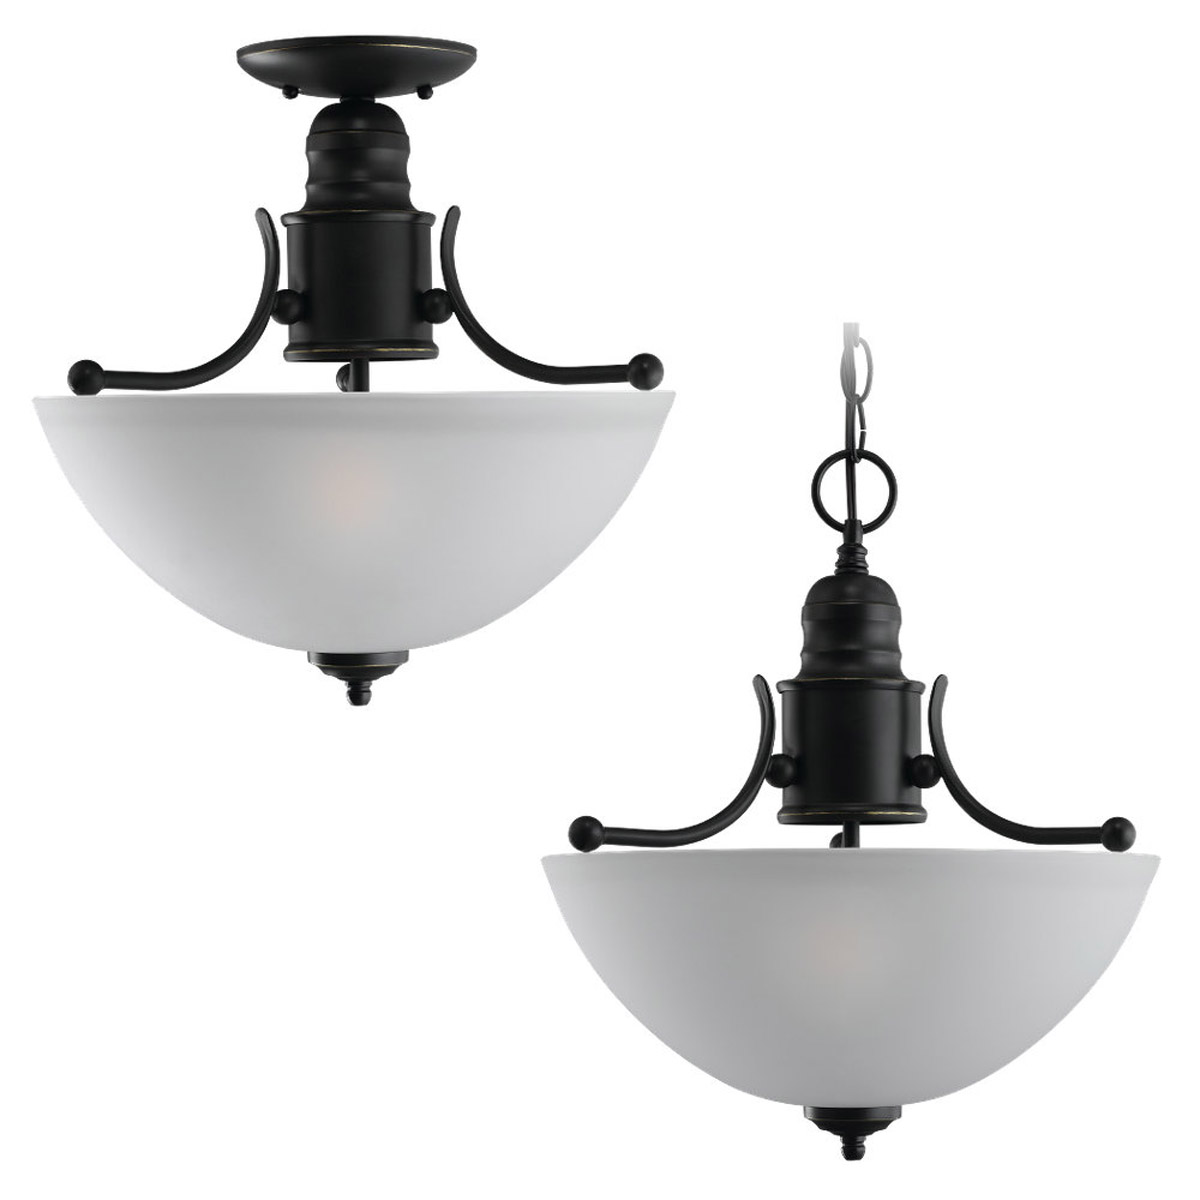 Sea Gull Lighting Linwood 2 Light Flush Mount in Heirloom Bronze 77225-782 photo